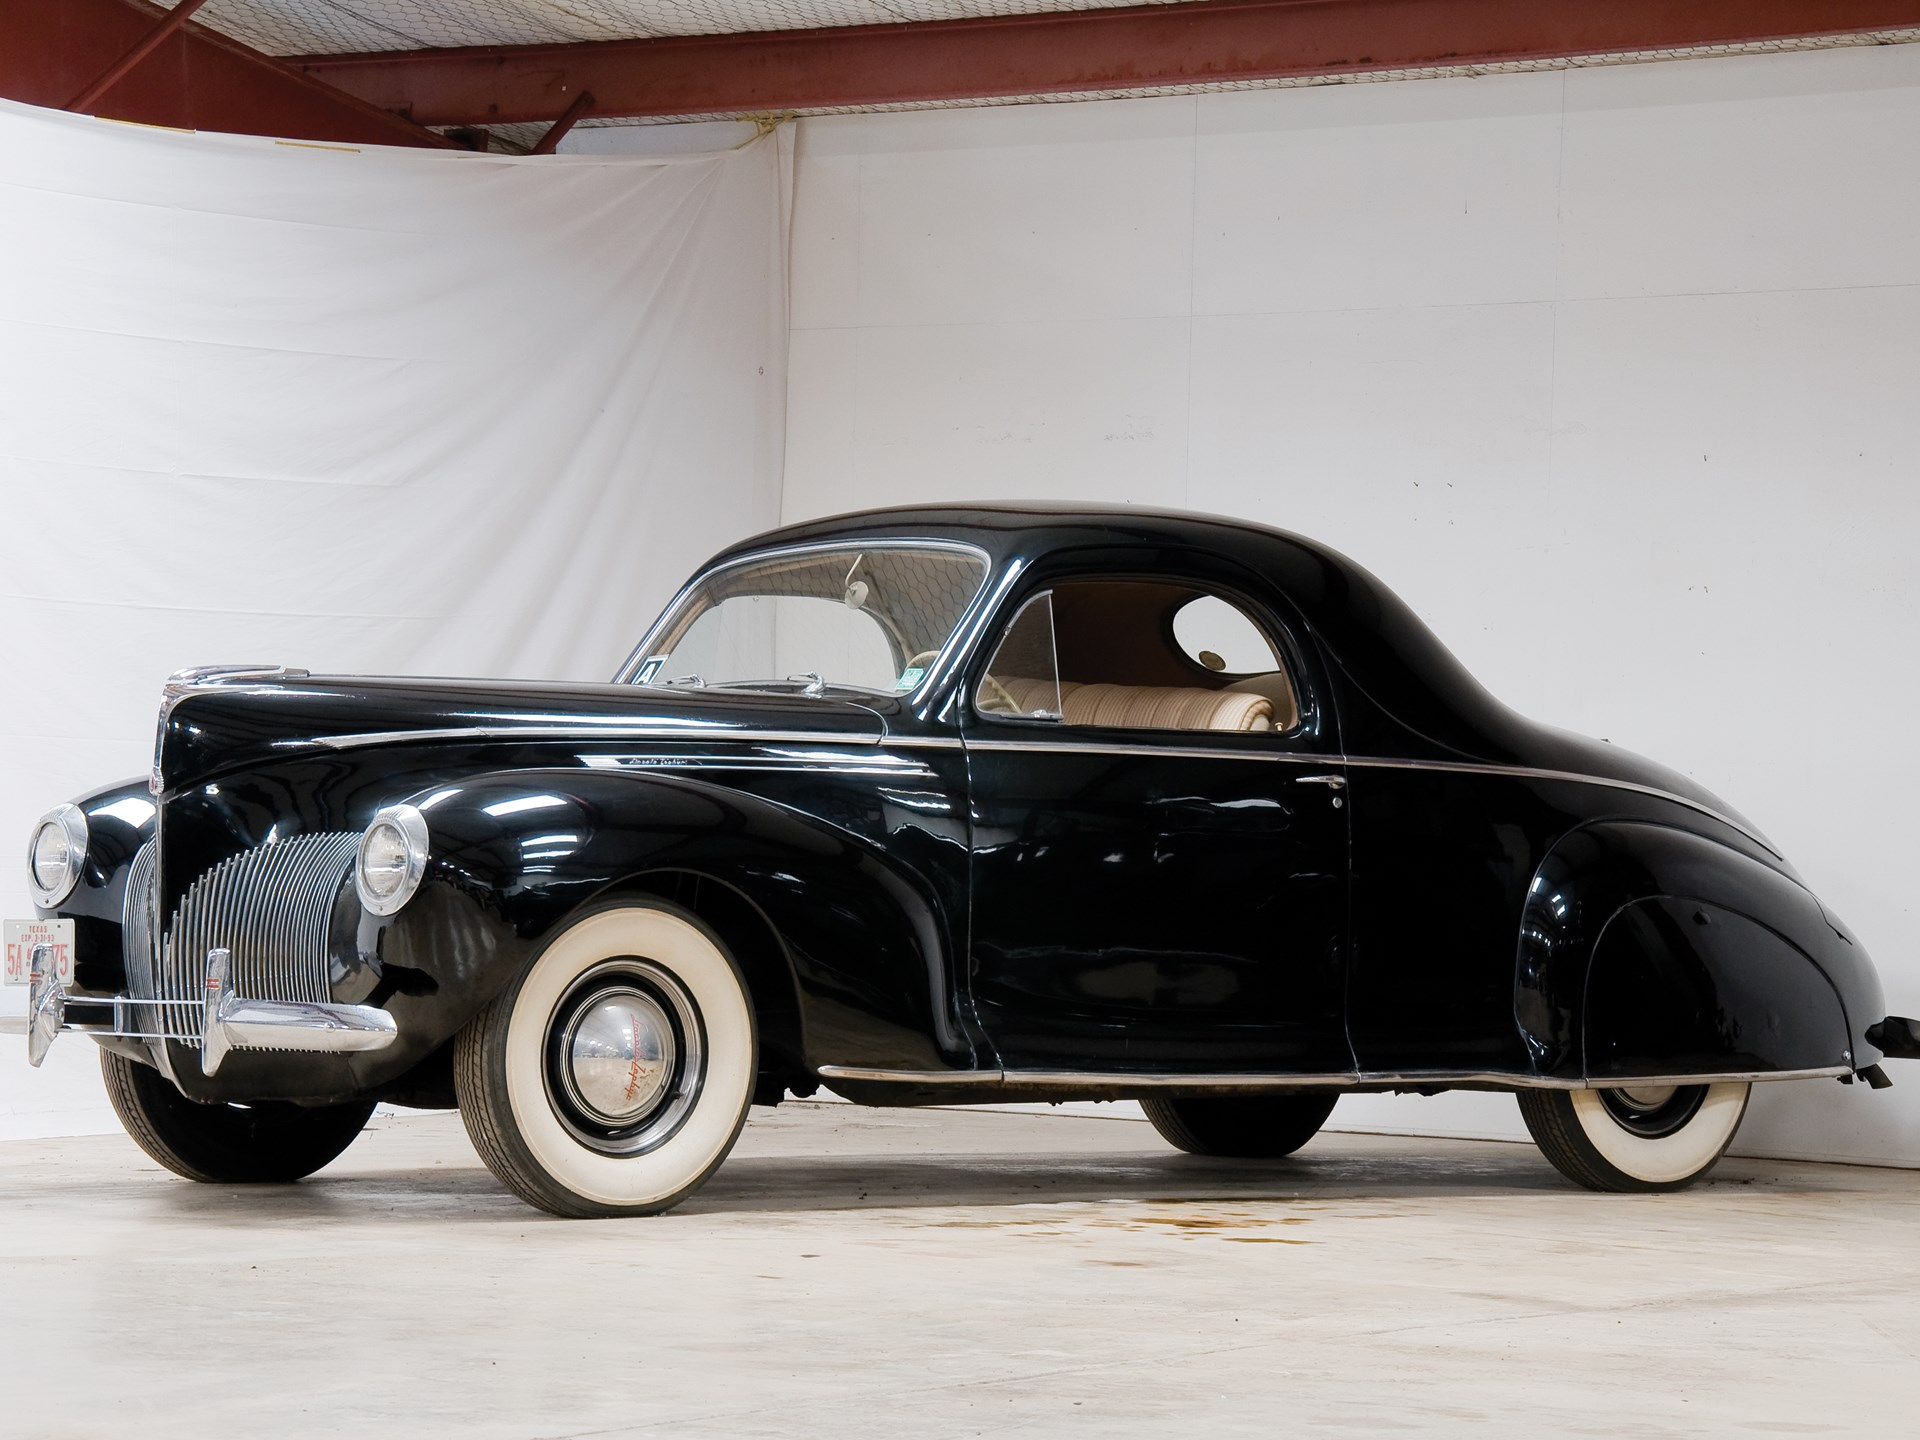 Rm Sotheby S 1940 Lincoln Zephyr Coupe The Pate Collection 2010